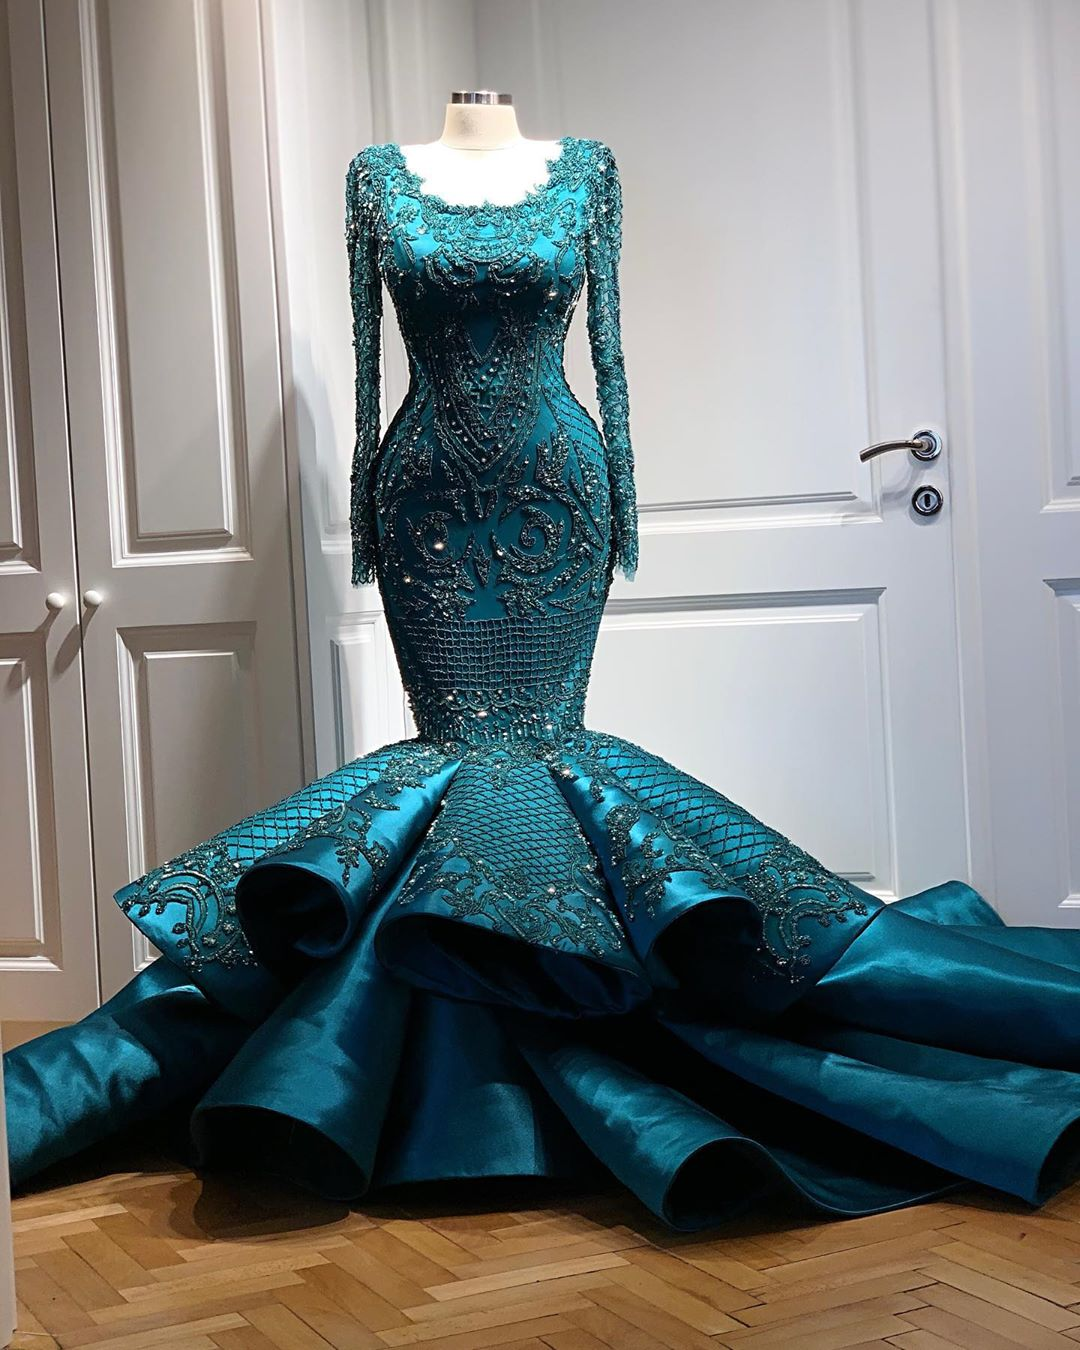 Green Haute Couture Handmade Gown With Full Sleeves.